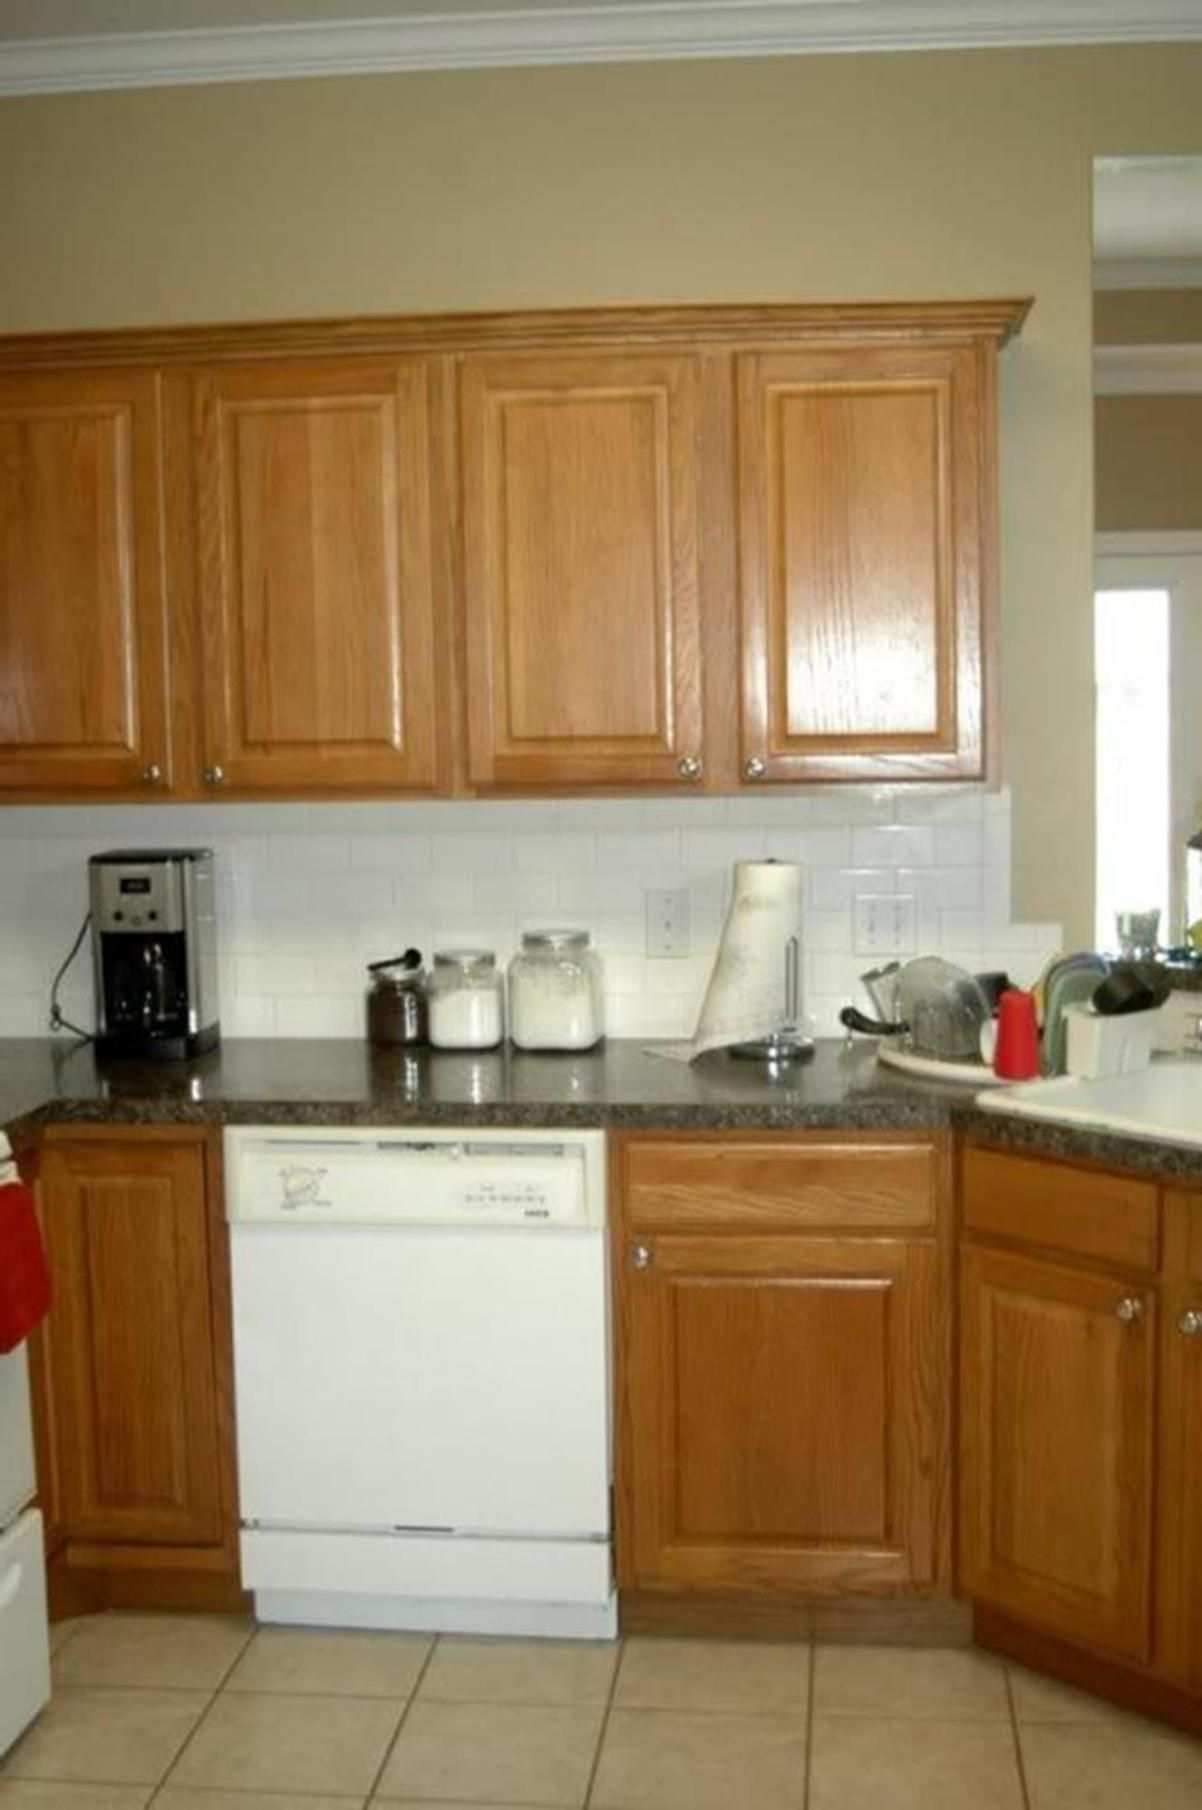 20 Perfect Kitchen Wall Colors with Oak Cabinets for 2019 #honeyoakcabinets 20 Perfect Kitchen Wall Colors with Oak Cabinets for 2019 6 #honeyoakcabinets 20 Perfect Kitchen Wall Colors with Oak Cabinets for 2019 #honeyoakcabinets 20 Perfect Kitchen Wall Colors with Oak Cabinets for 2019 6 #honeyoakcabinets